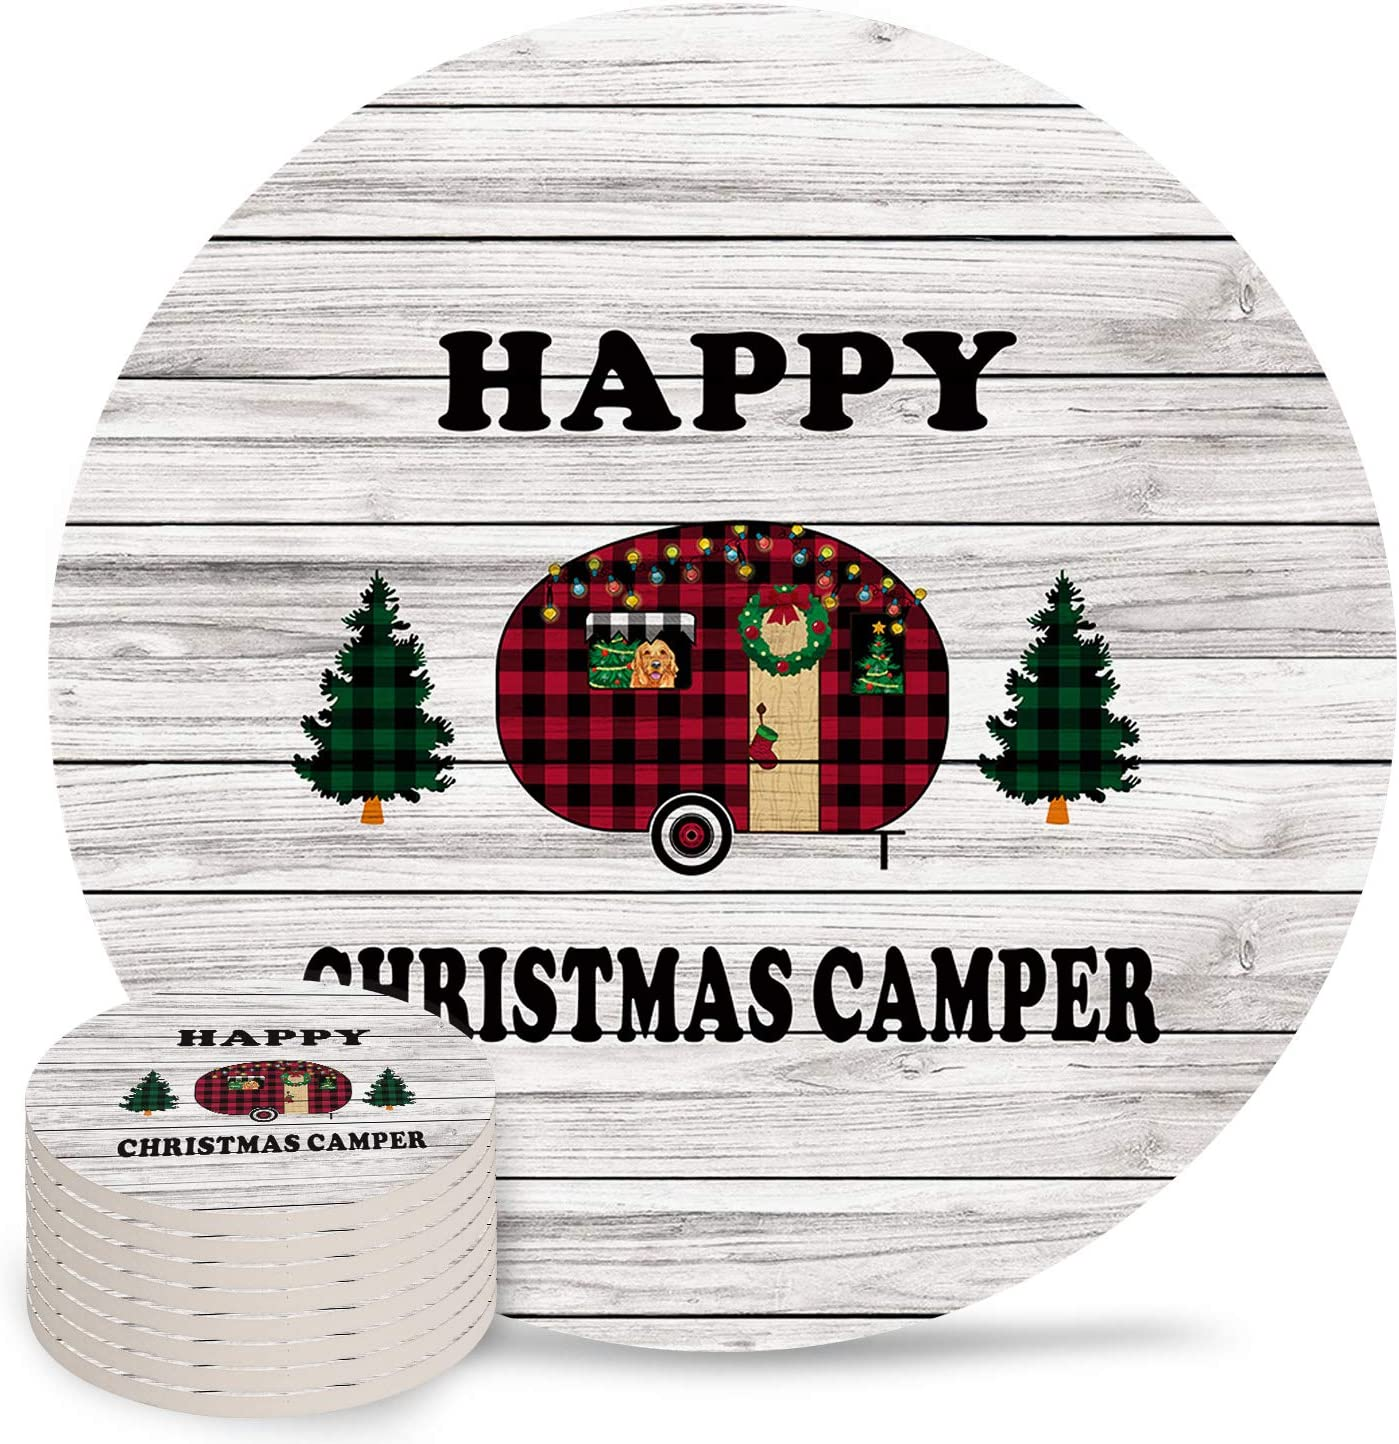 Christmas Coasters Round Drinks Absorbent Max 79% OFF Cera Coaster Set Weekly update with